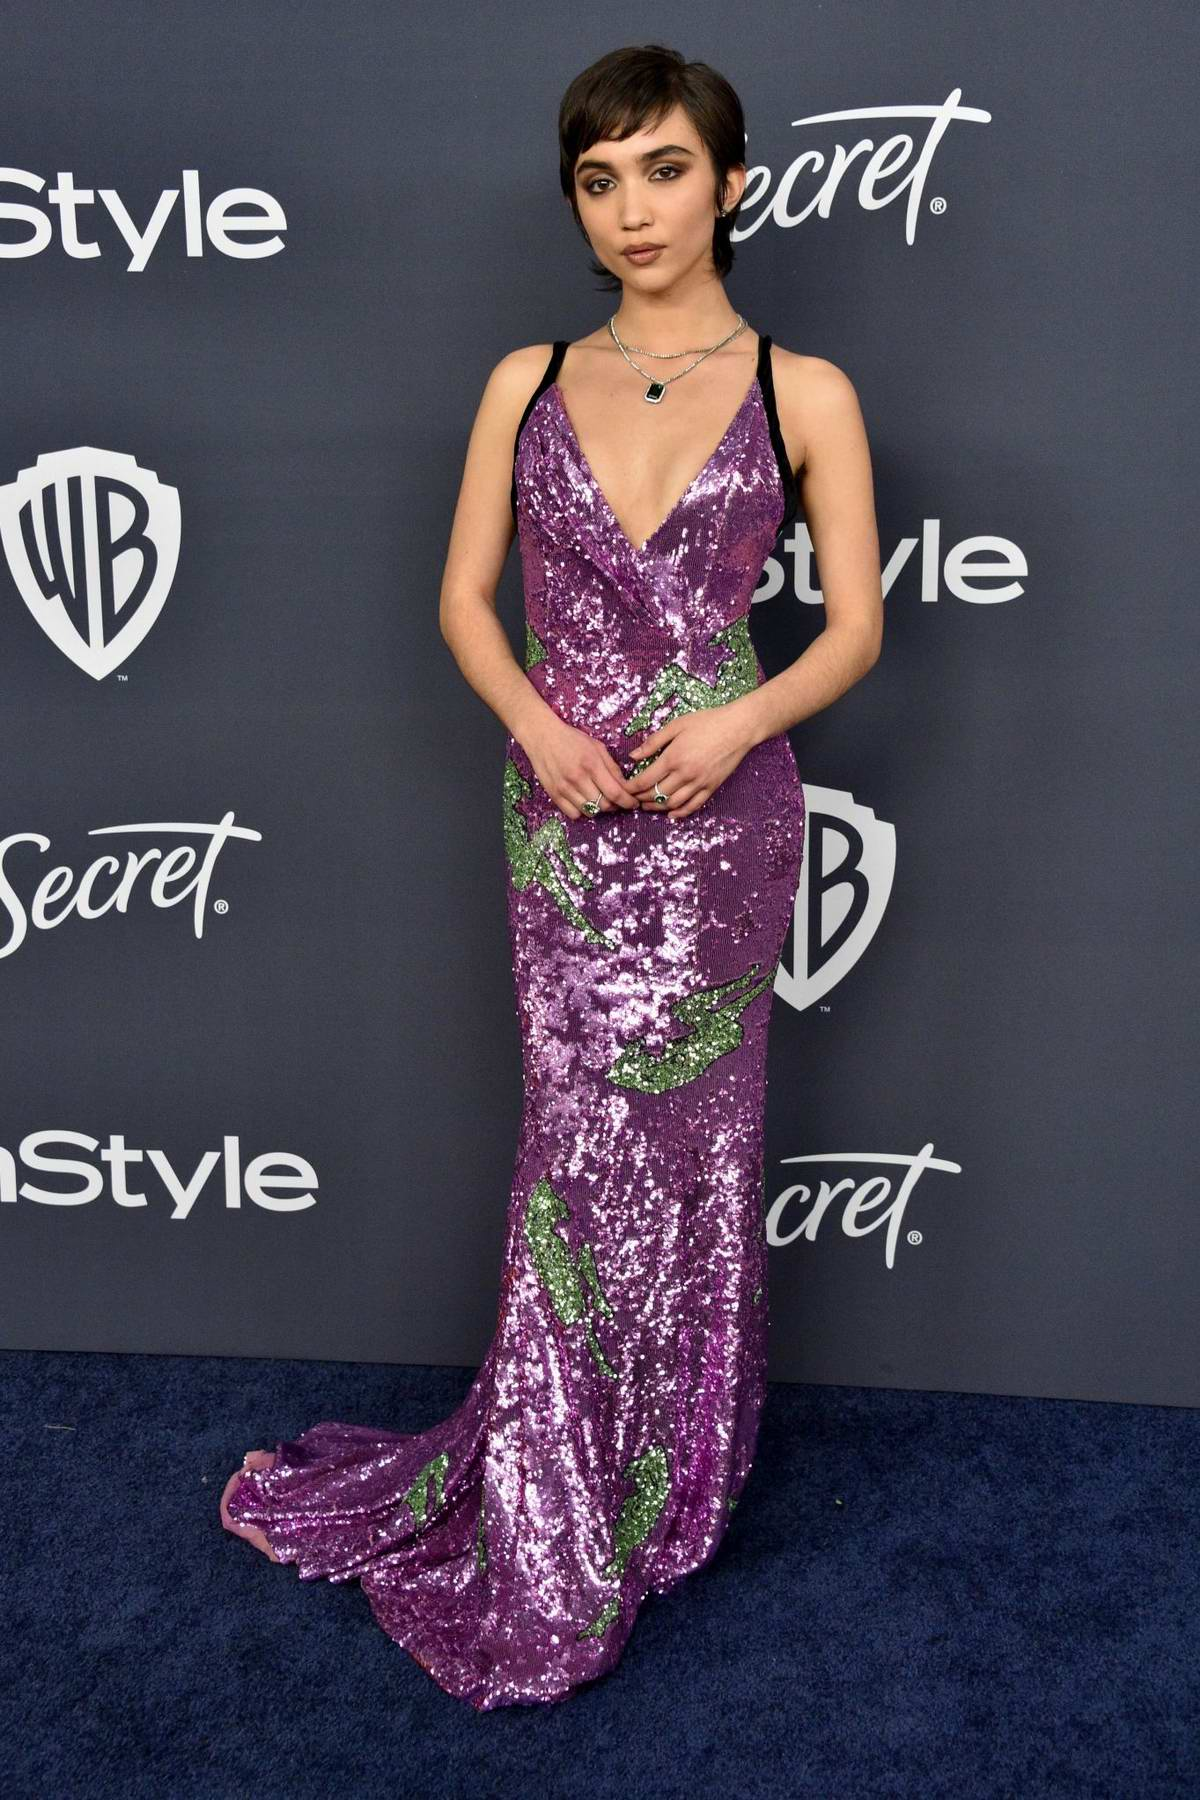 Rowan Blanchard attends the 21st annual Warner Bros and InStyle Golden Globe After-Party in Beverly Hills, California